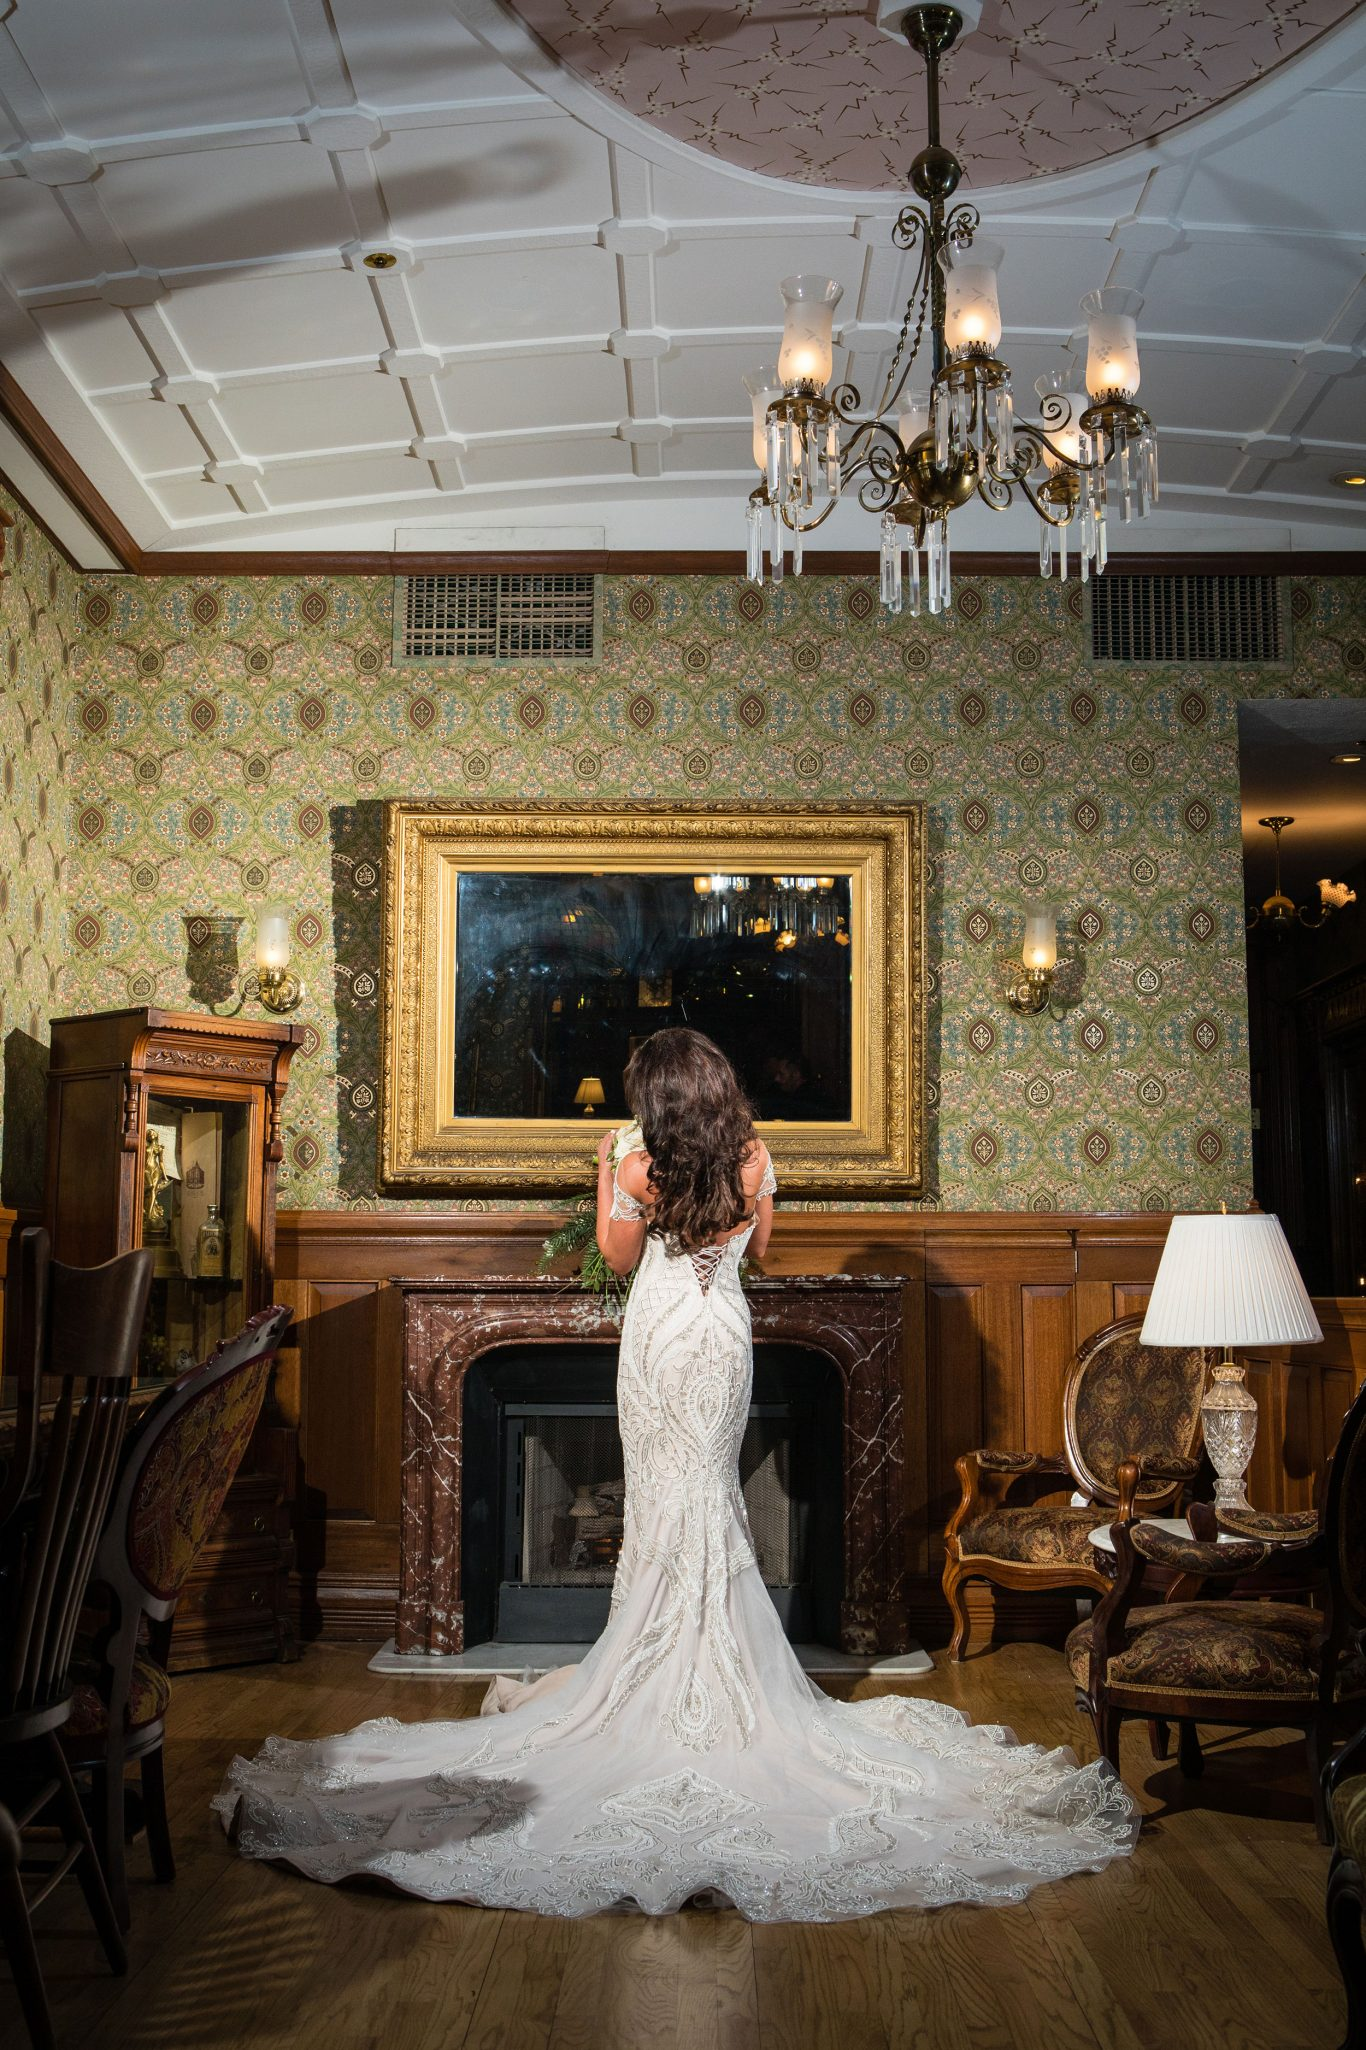 Steven Kahali $12k wedding dress | Durango Weddings Magazine